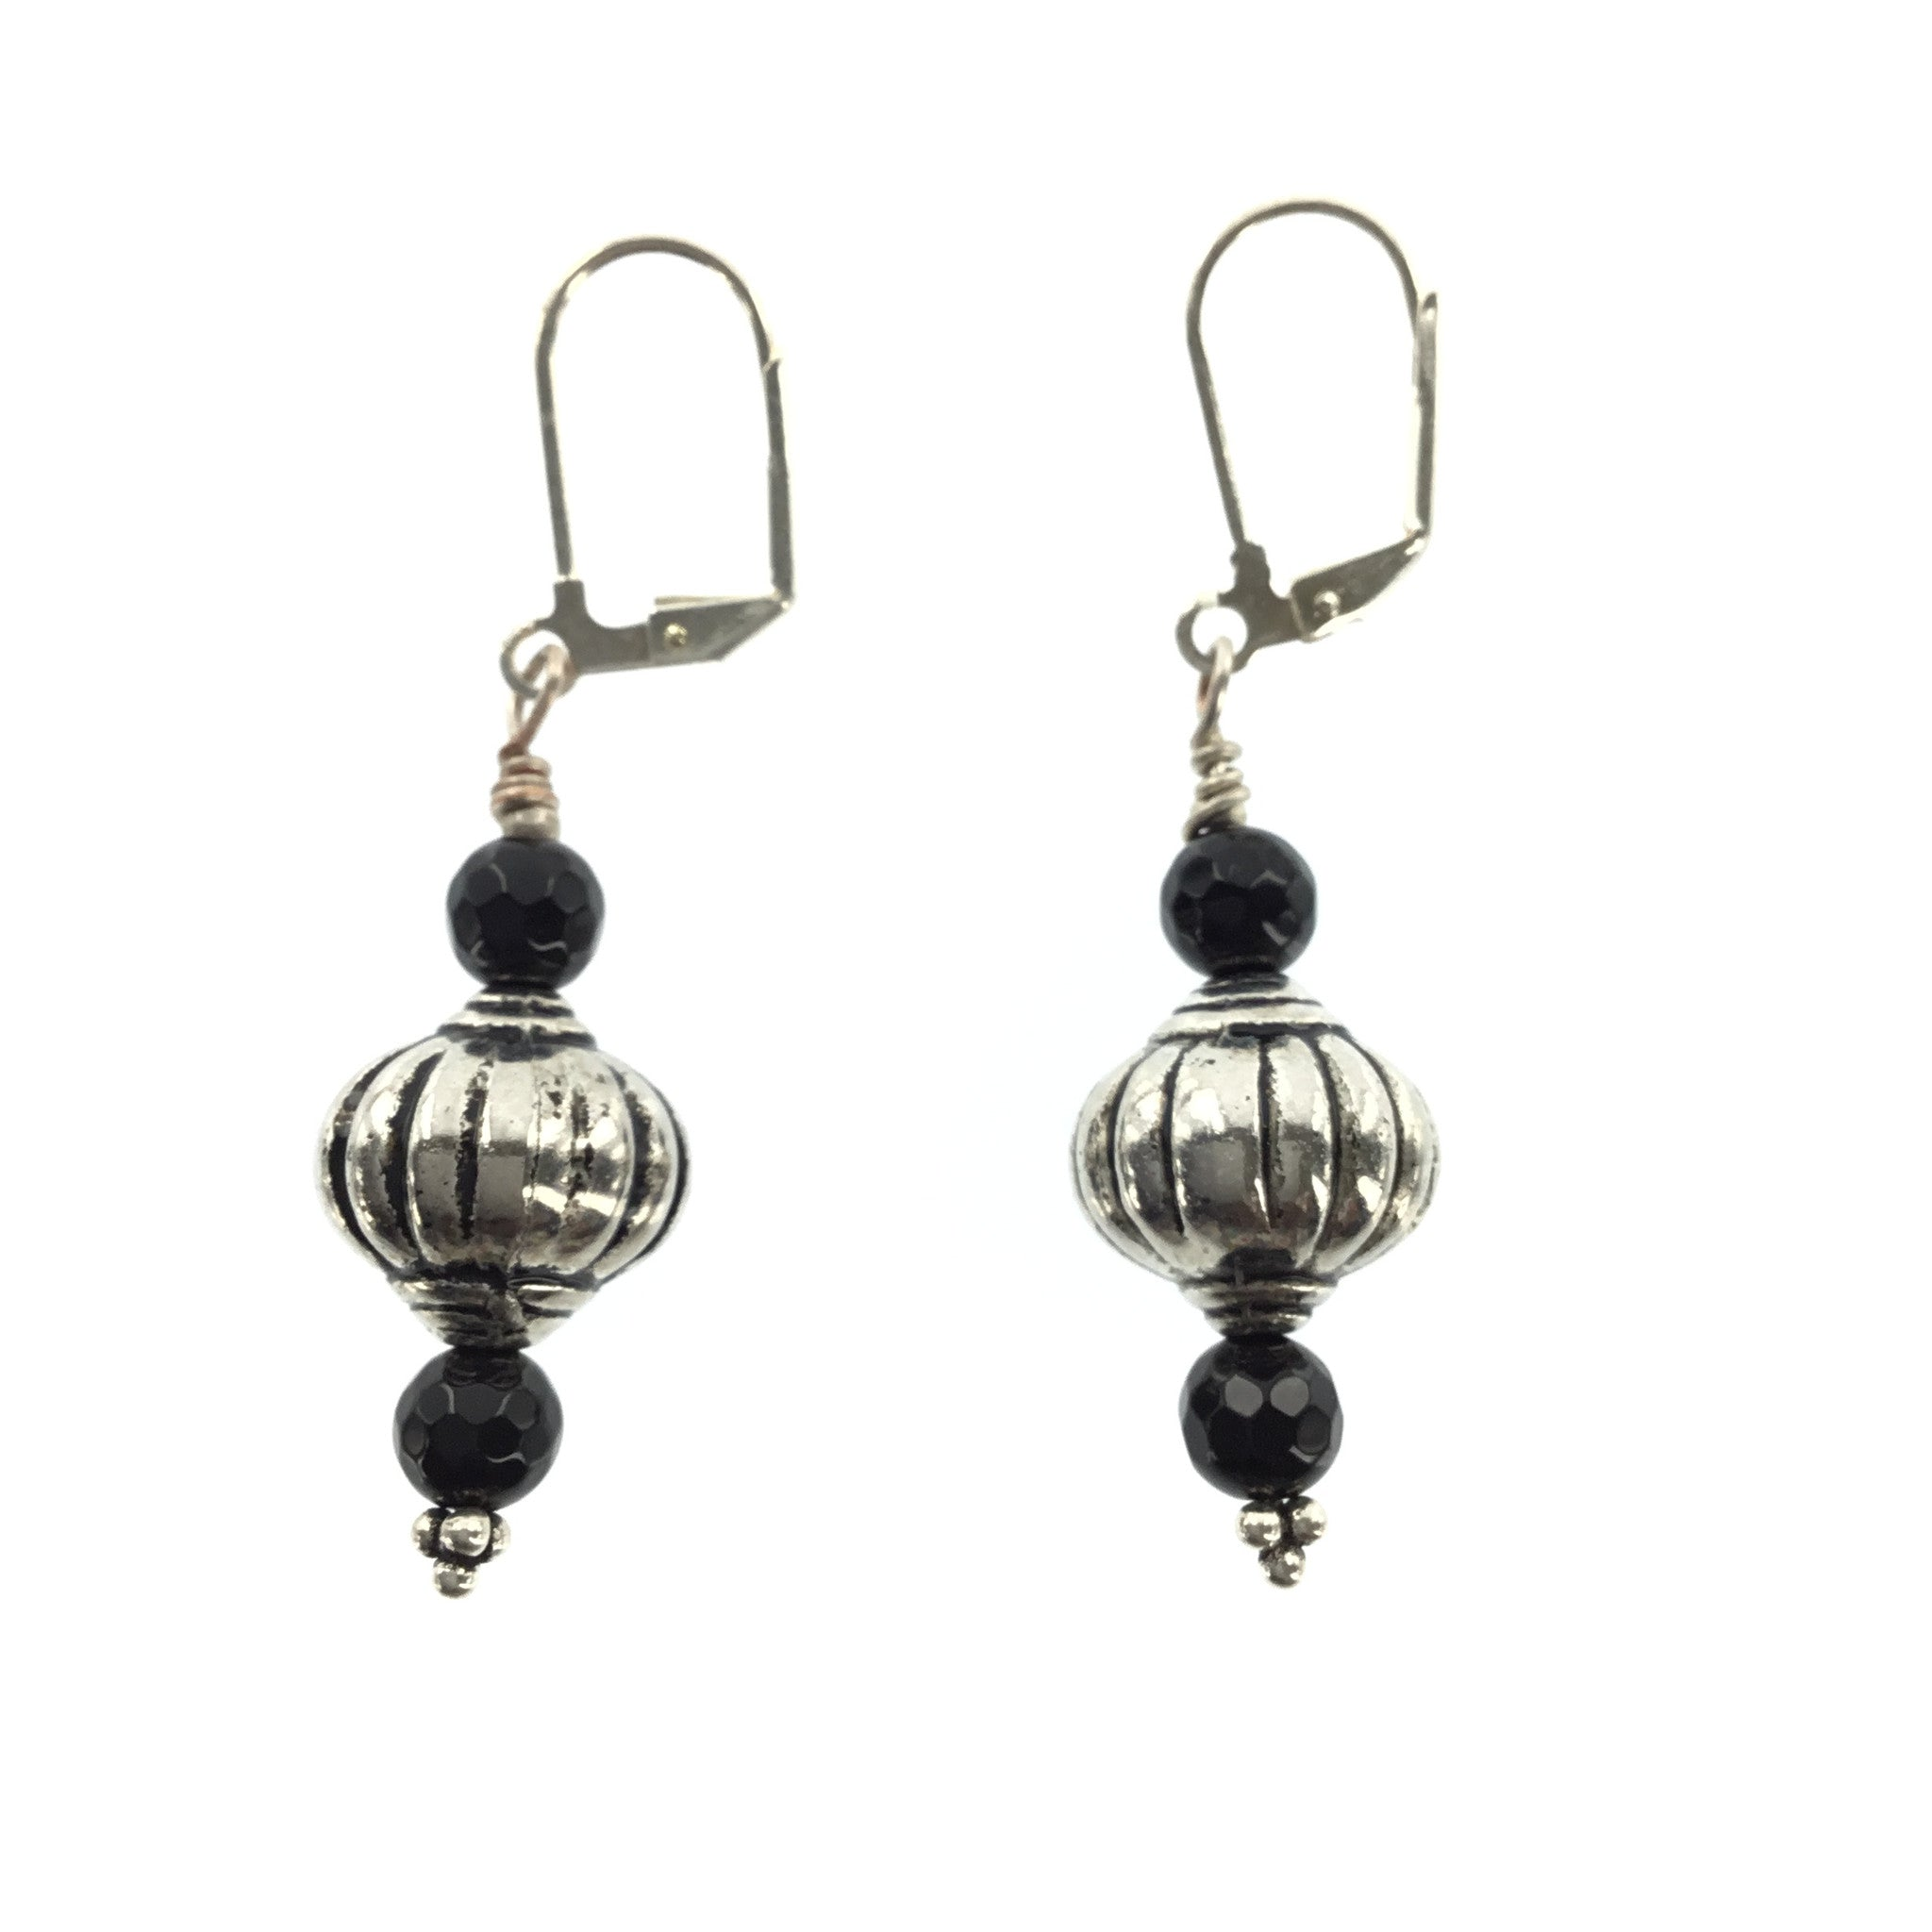 Antique Silver and Black Onyx Drop Earring - Real Chic Boutique  - 2